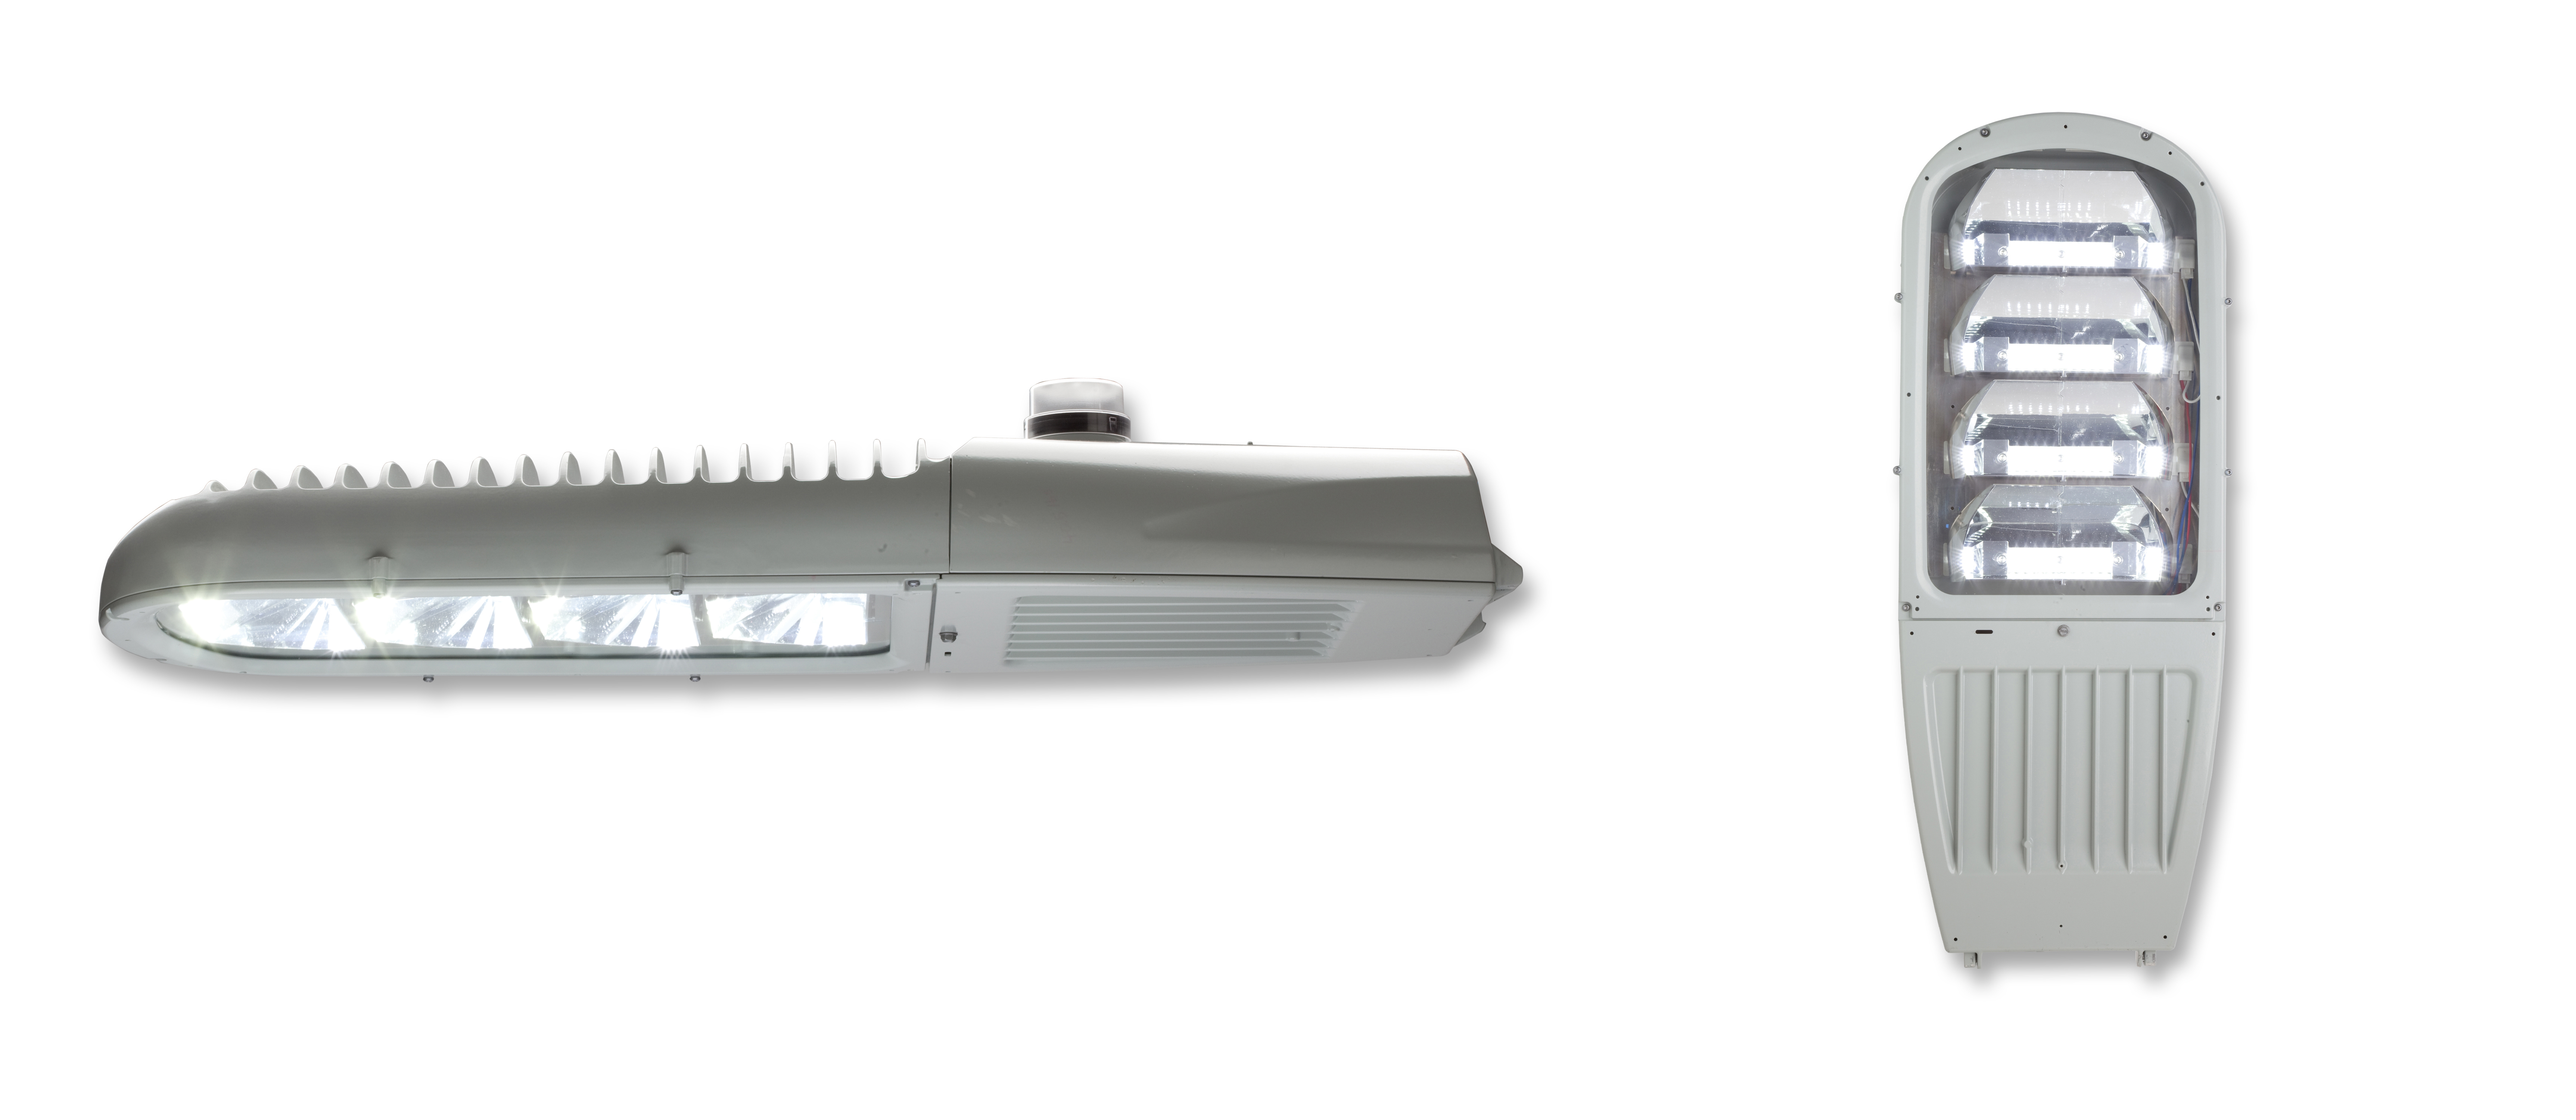 Ge S Evolve Led Scalable Cobrahead Fixture Wins Best In